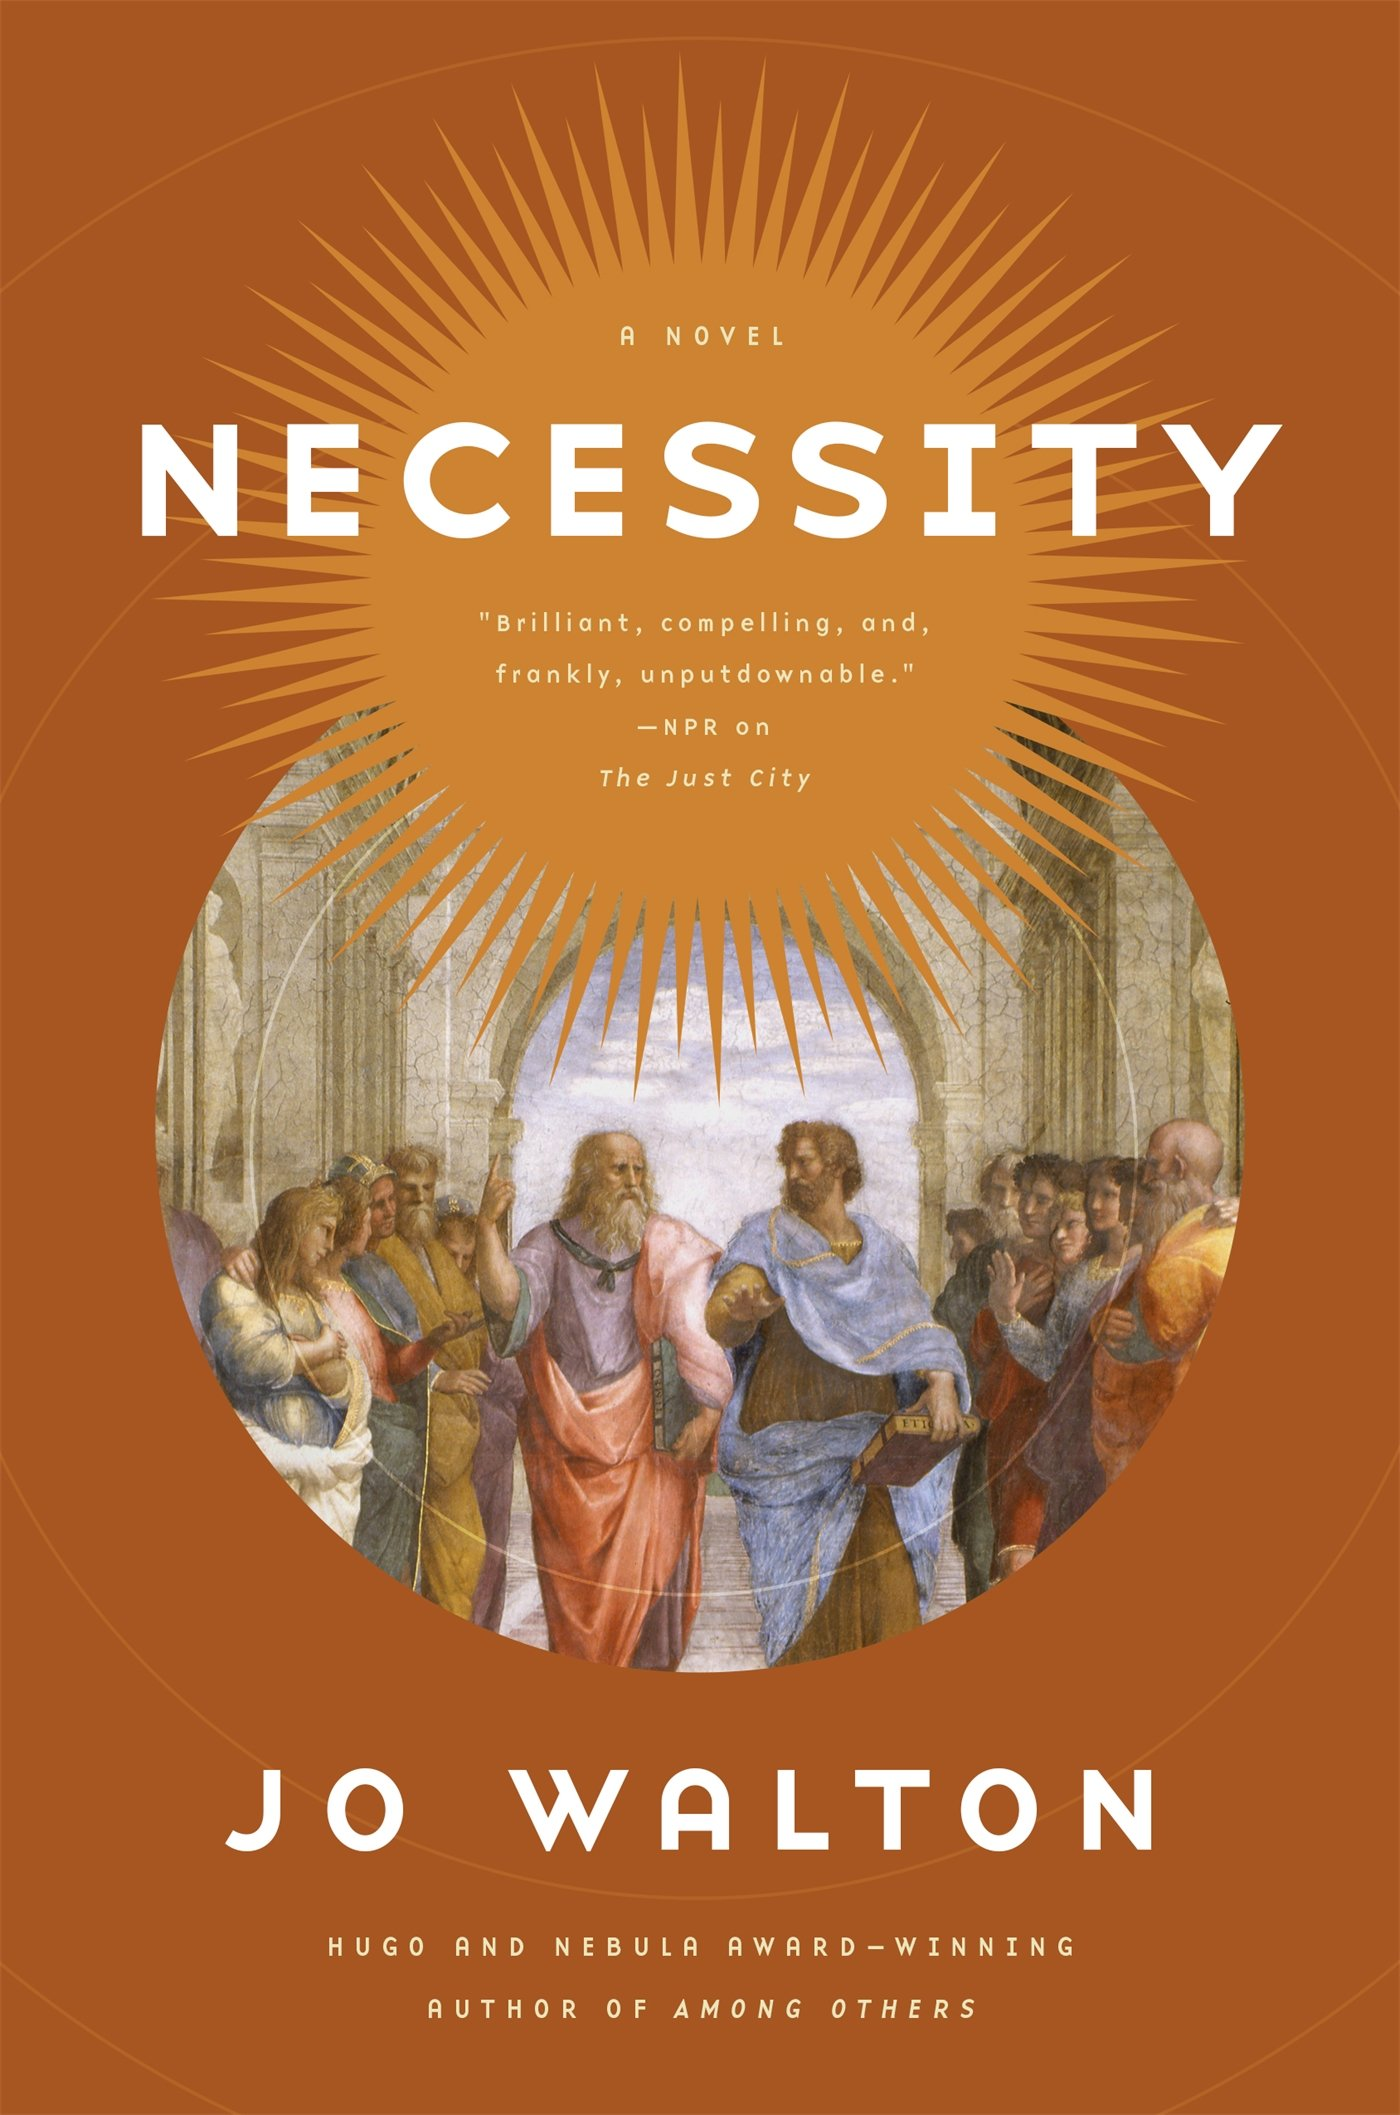 The book cover of Necessity